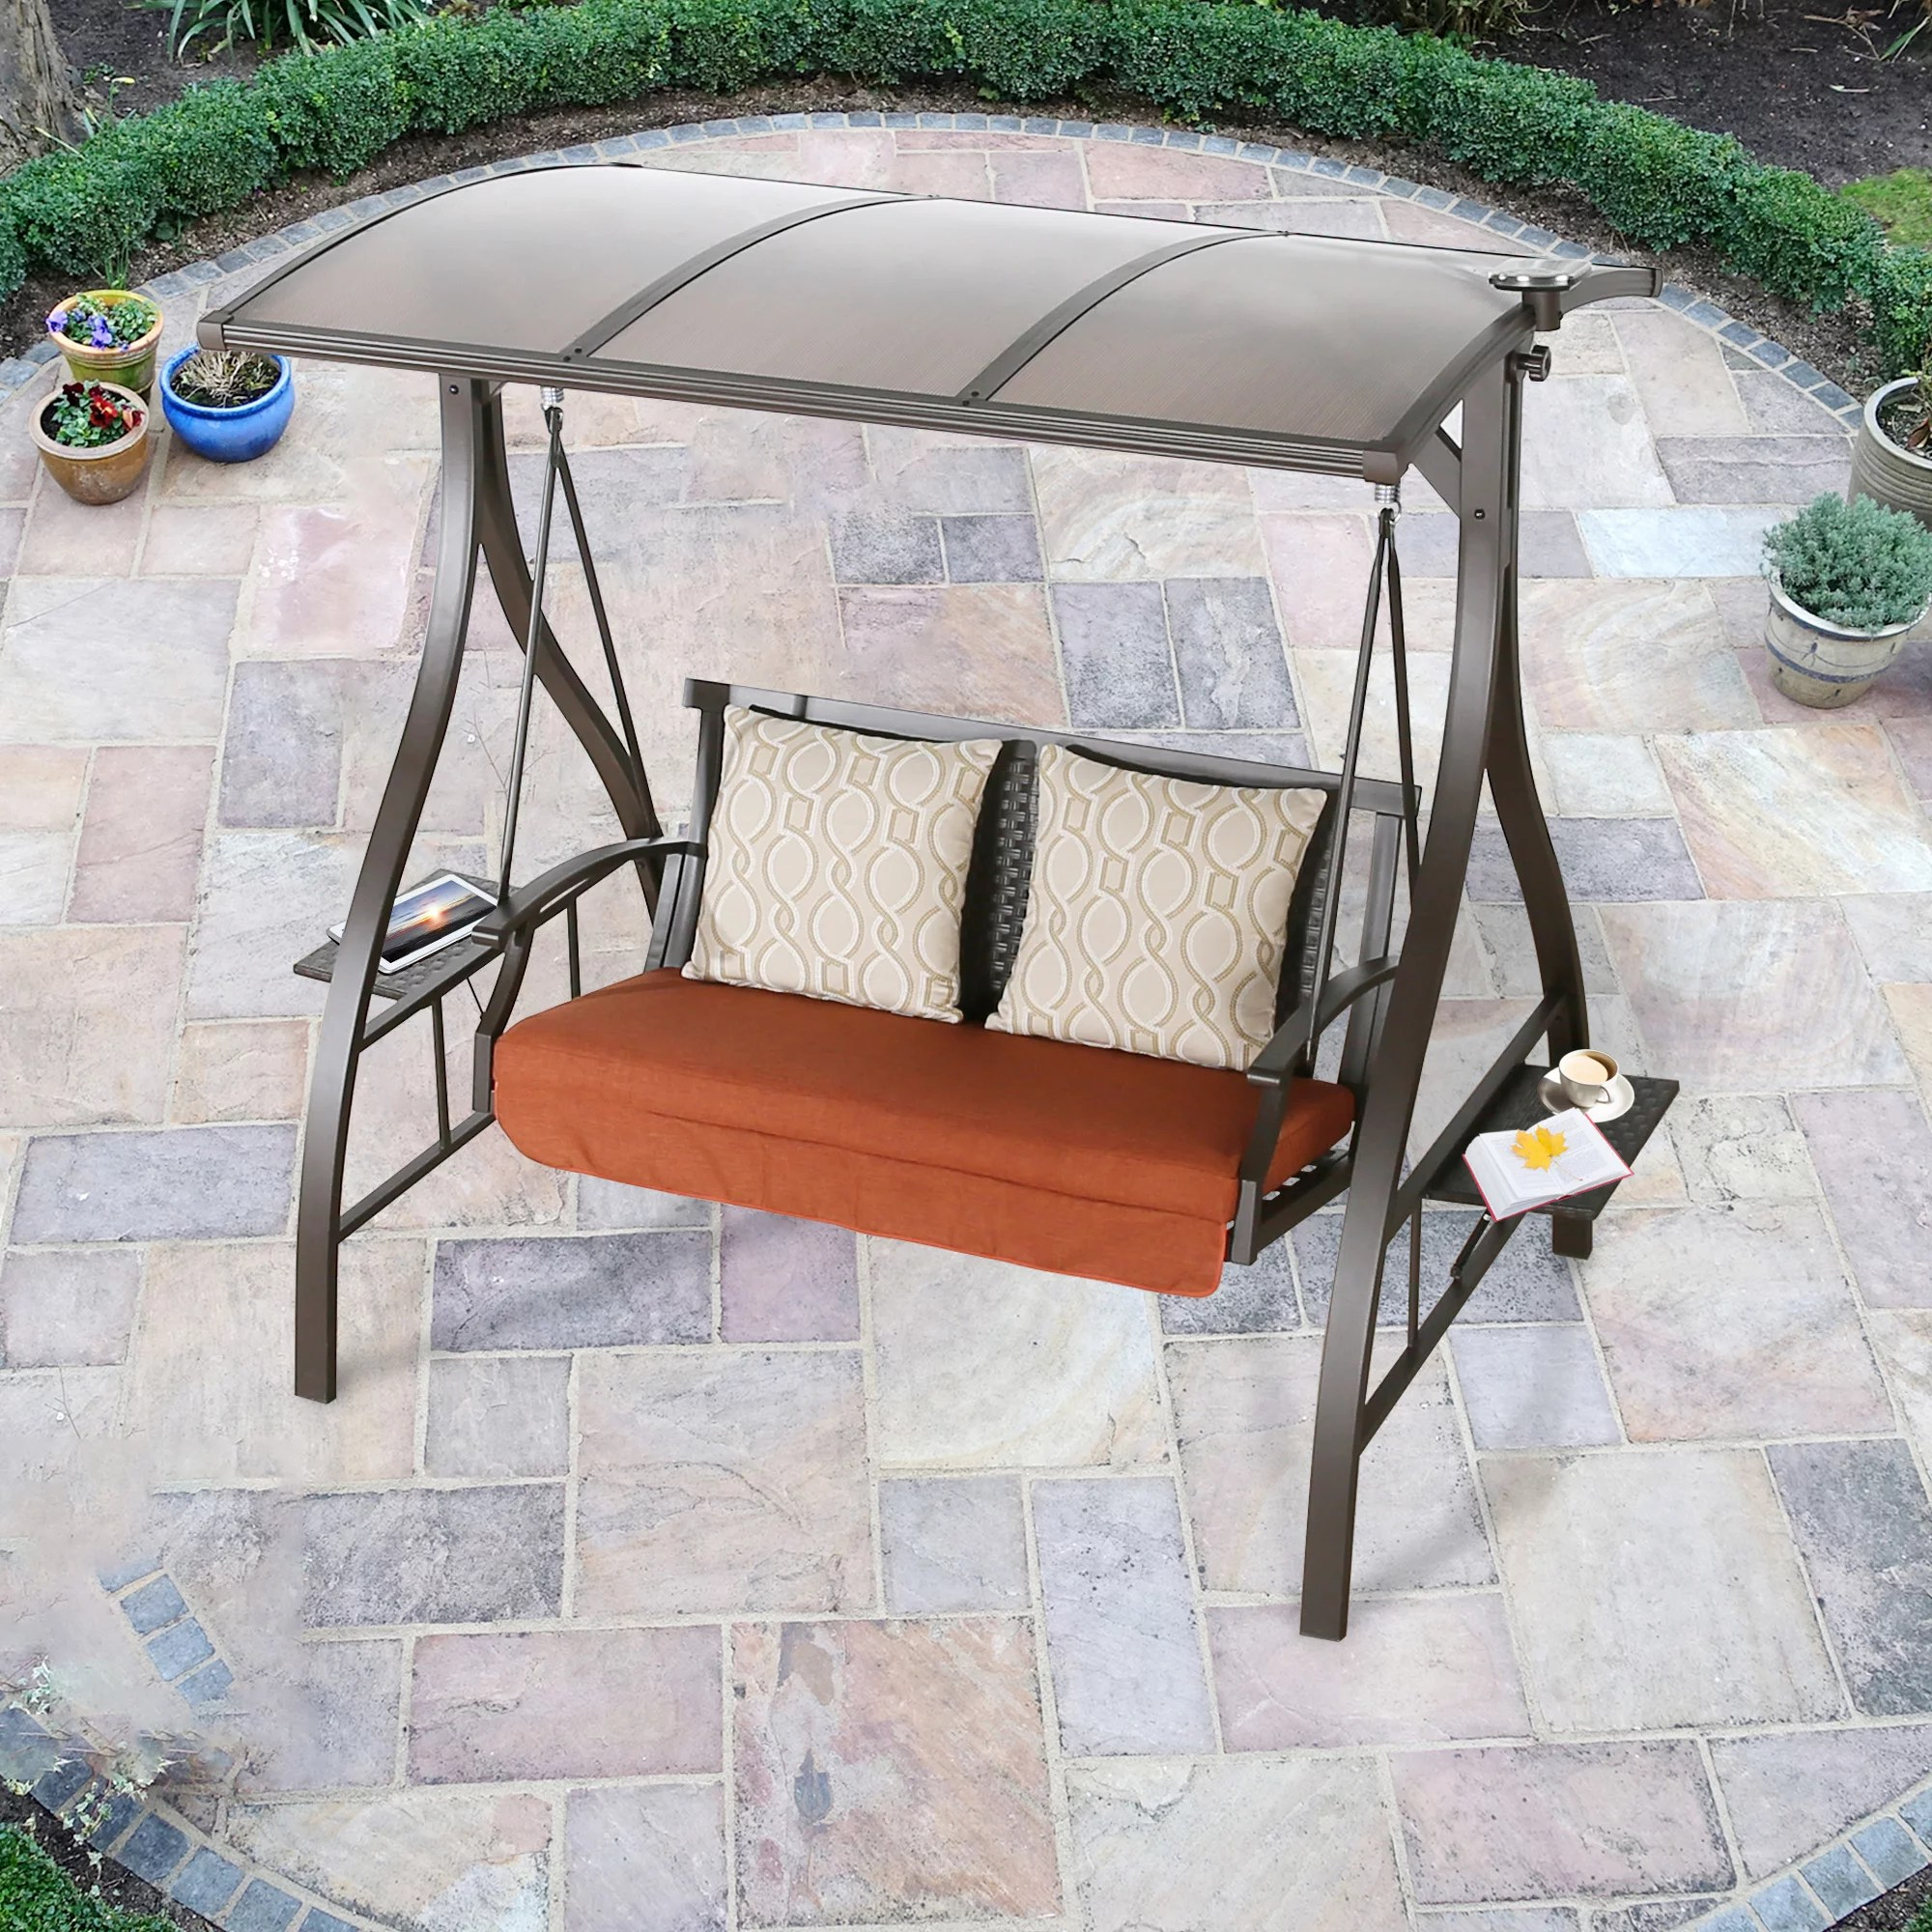 ulax furniture 2 seat outdoor large hardtop canopy porch swing chair with sunbrella cushions patio swing glider hammock lounge bench chair with solar